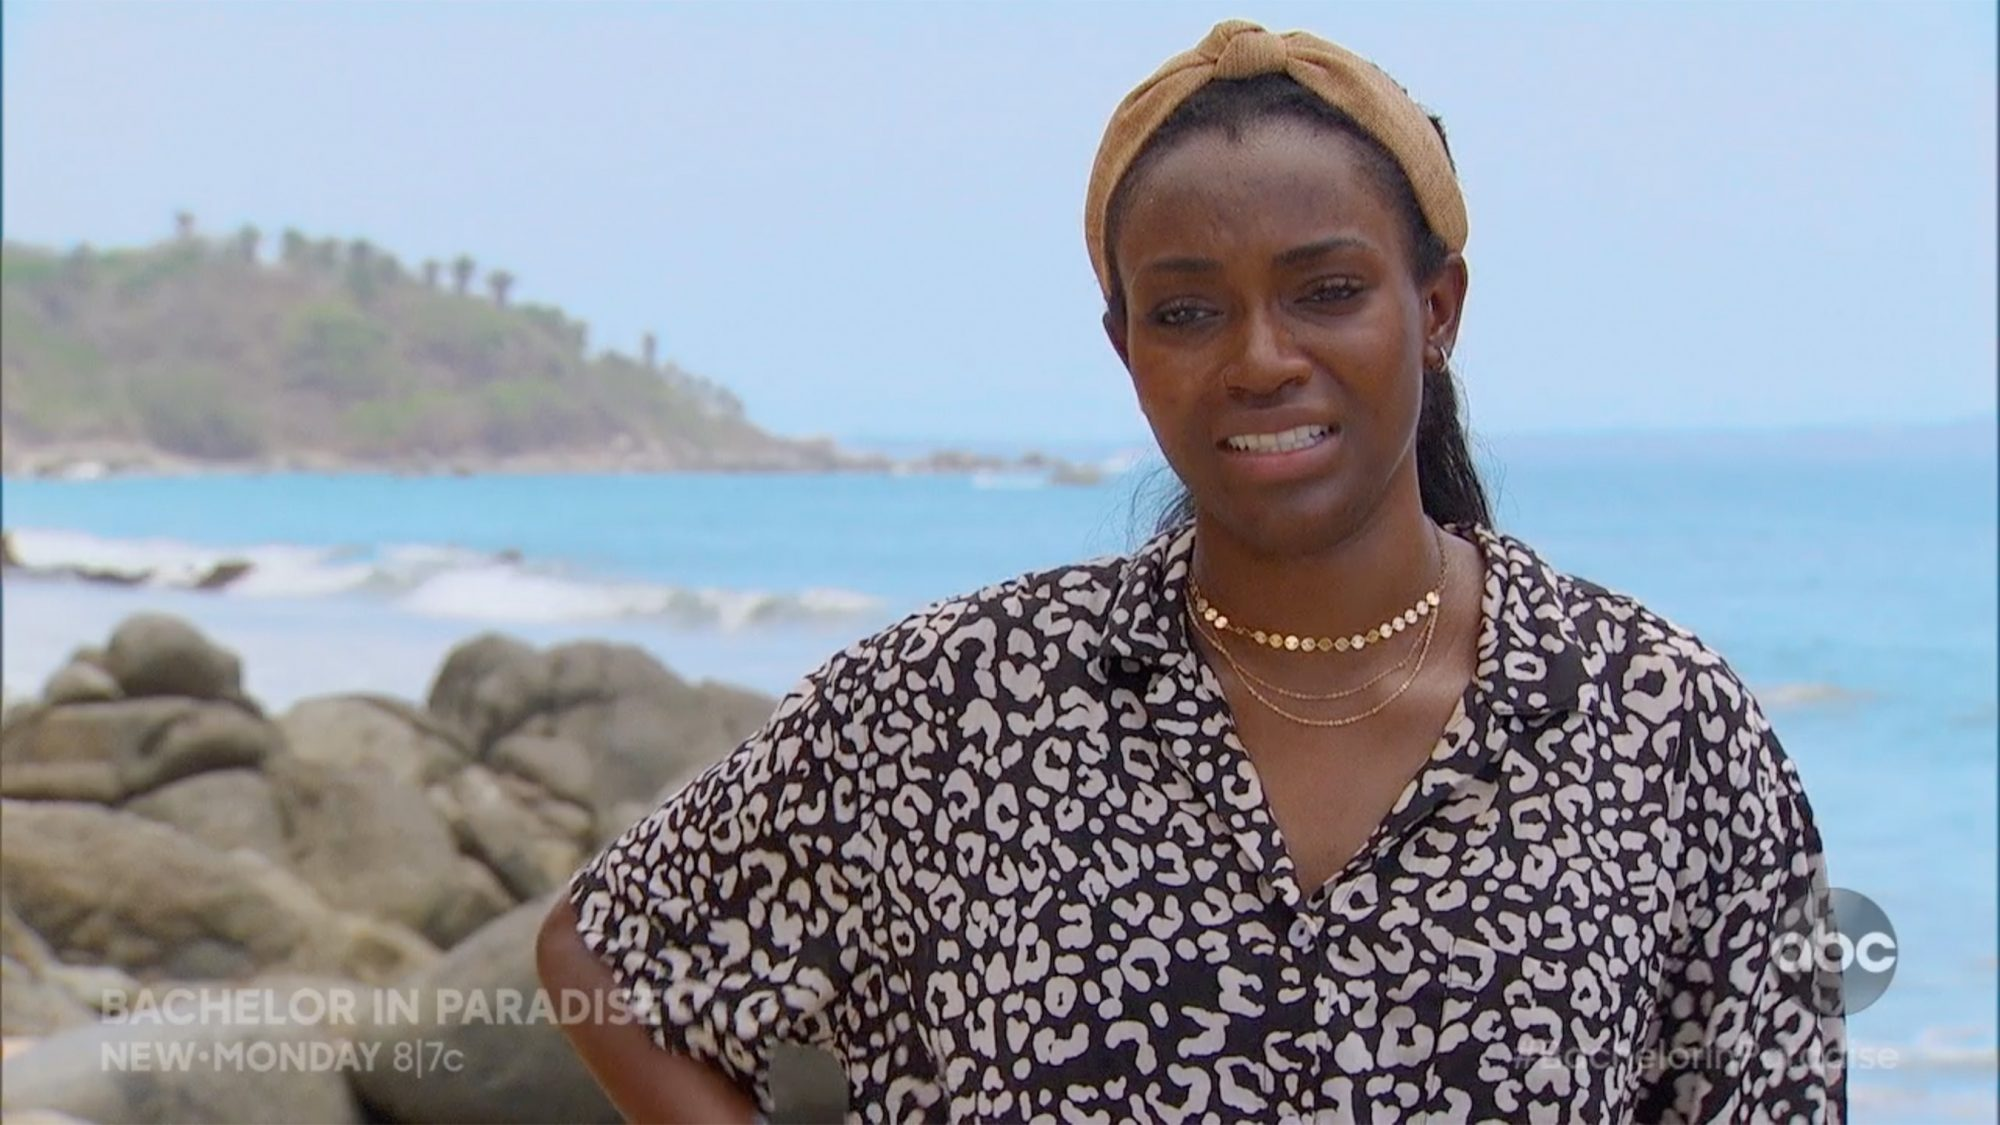 Bachelor in Paradise's Tahzjuan can't handle the heat